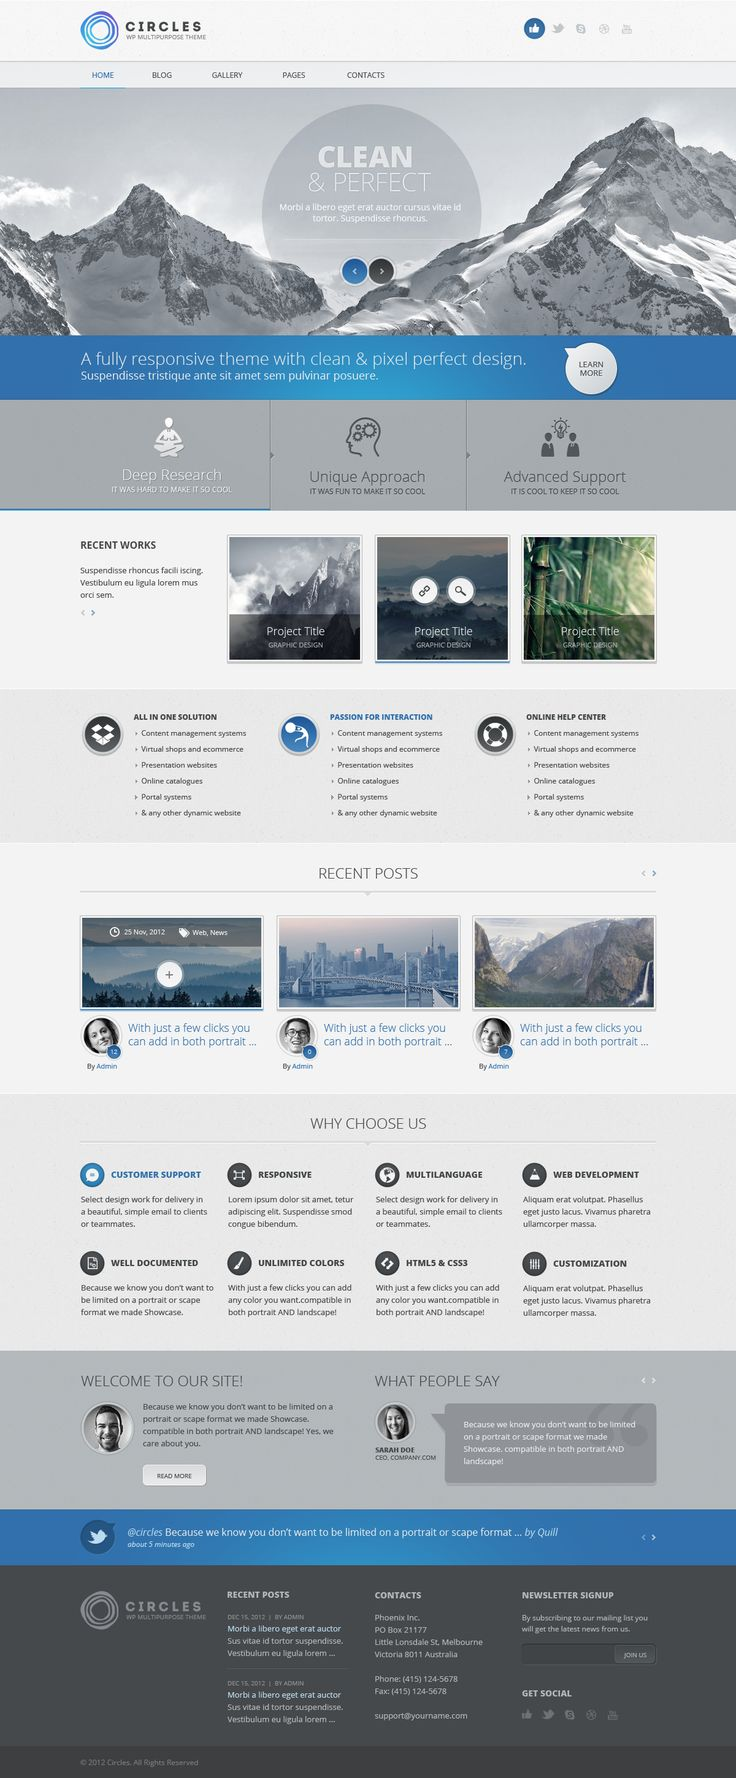 Circles PSD Template | #webdesign #it #web #design #wordpress #layout #userinterface #website #webdesign <<< repinned by an #advertising #agency from #Hamburg / #Germany - www.BlickeDeeler.de | Follow us on www.facebook.com/BlickeDeeler